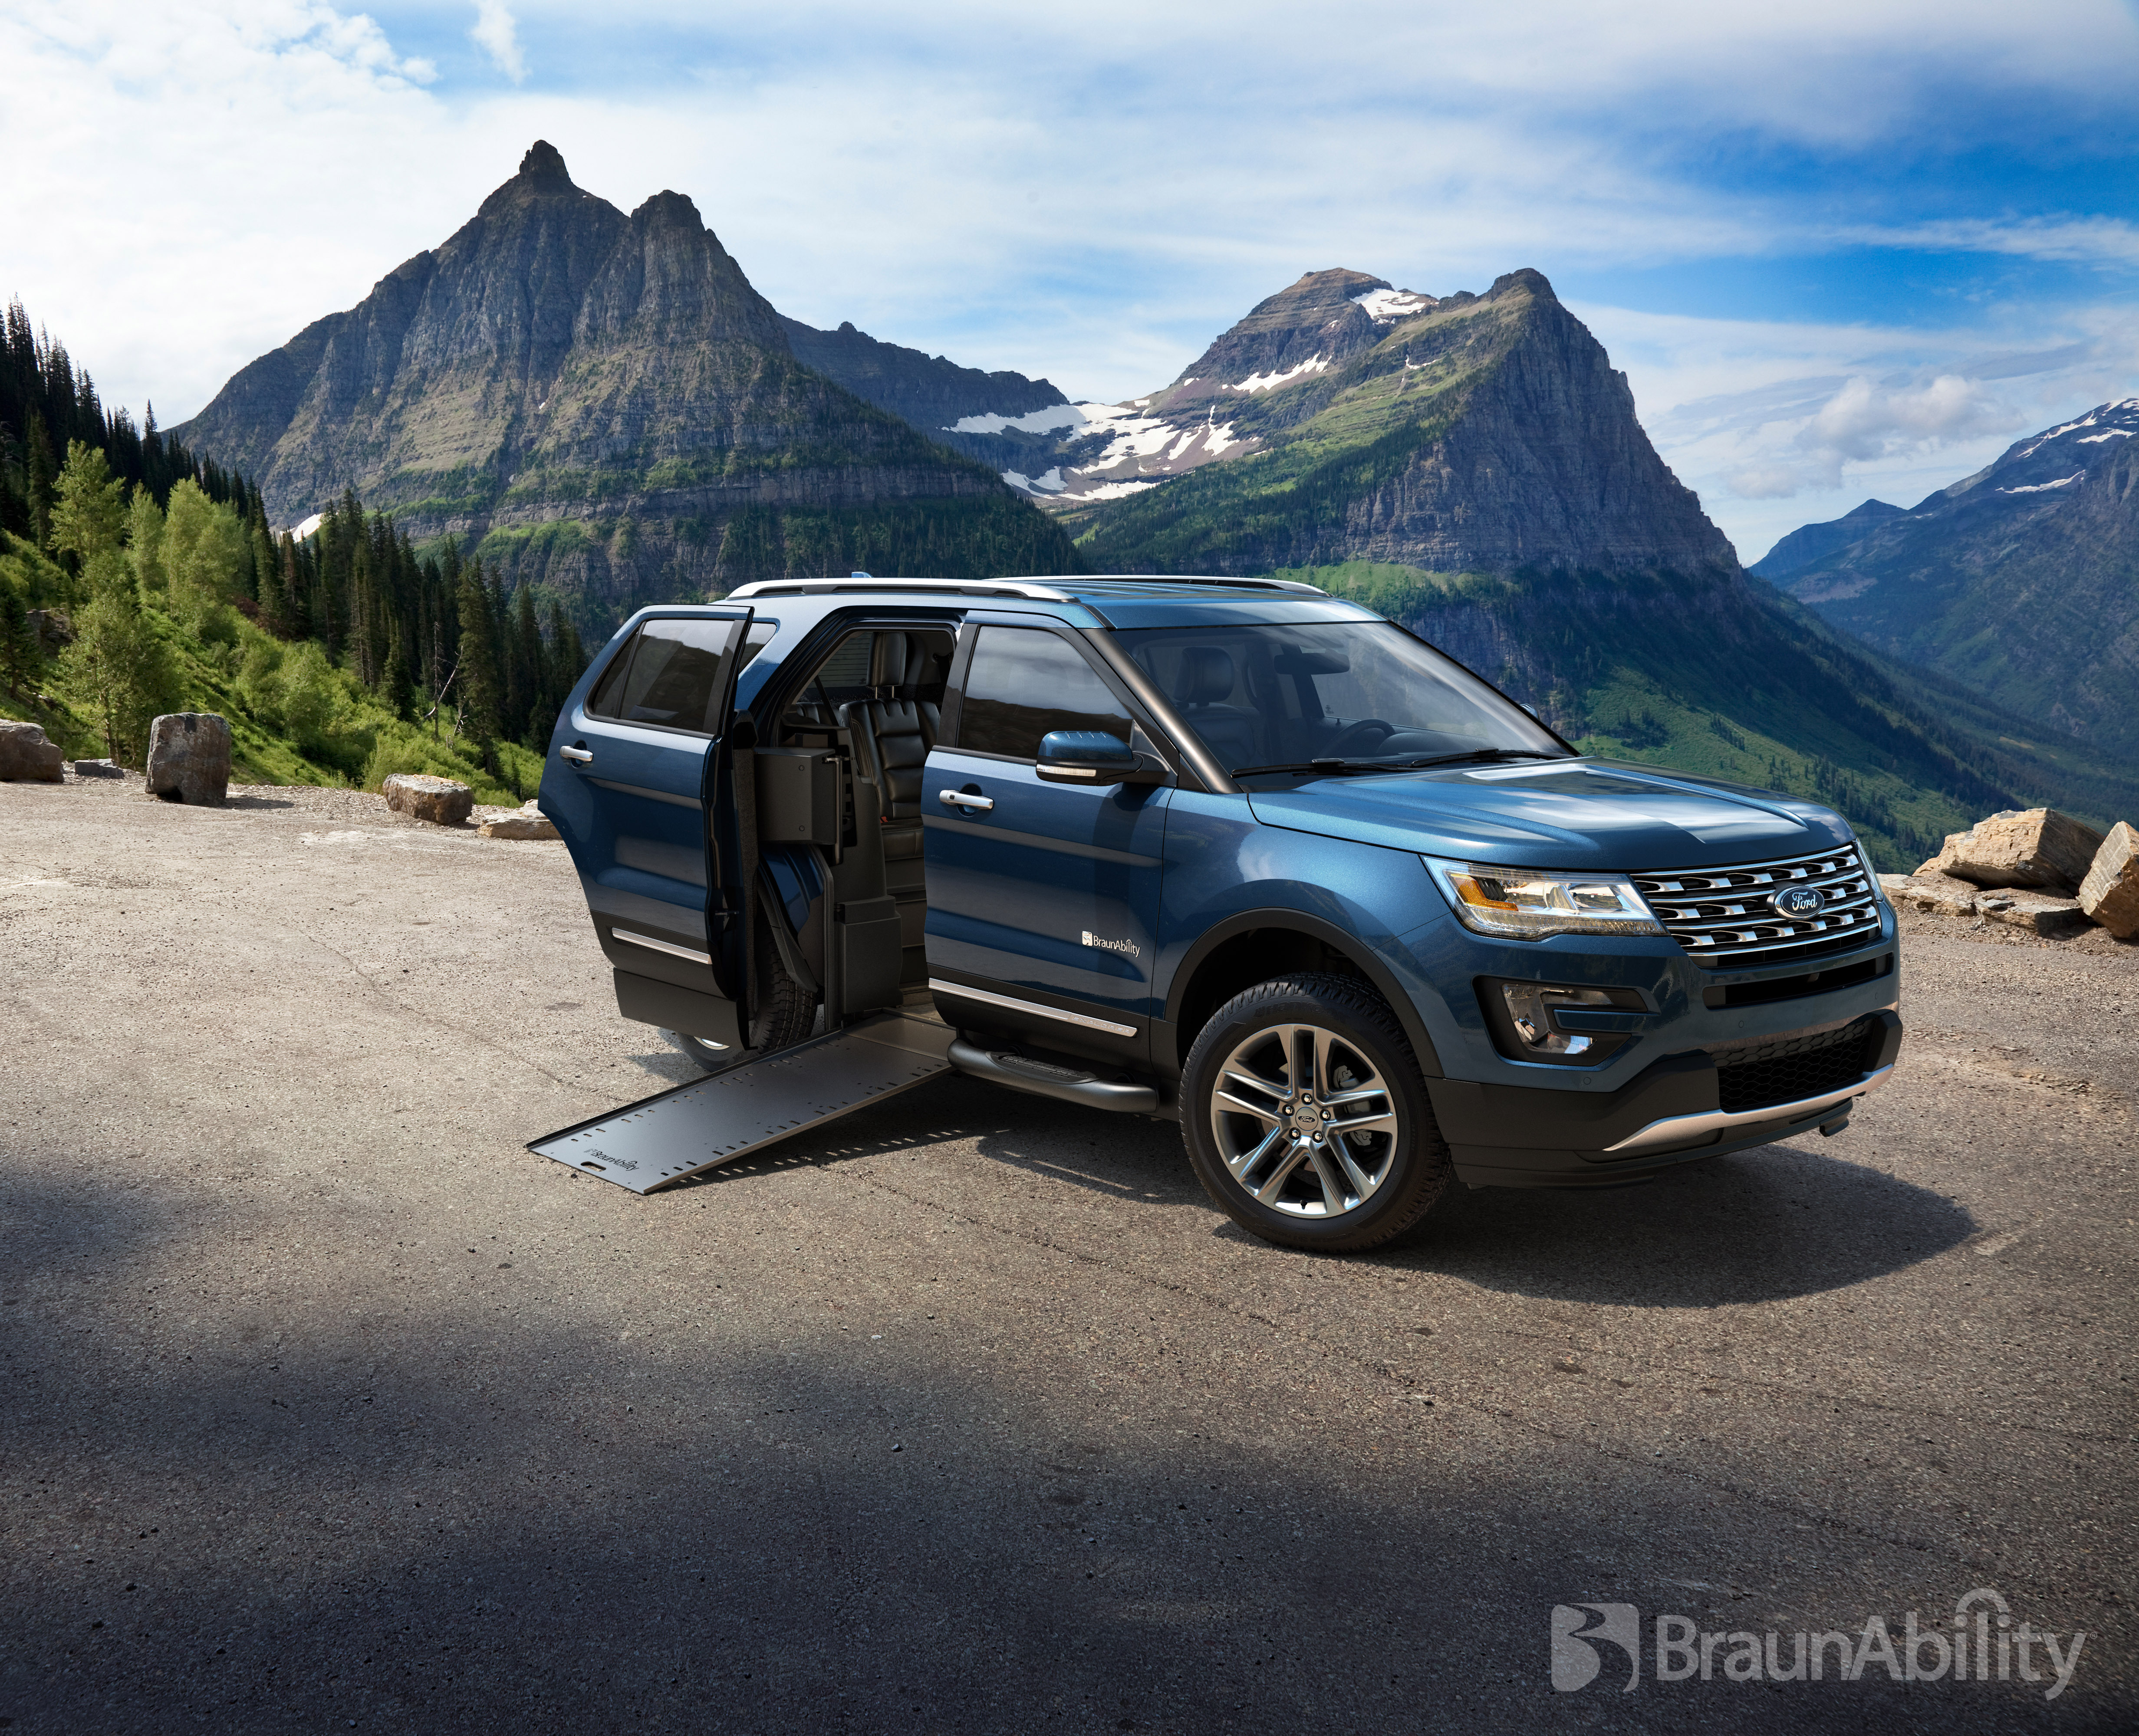 BraunAbility MXV u2013 a Ford Explorer Conversion u2013 Is Worldu0027s First Wheelchair-Accessible SUV | Business Wire & BraunAbility MXV u2013 a Ford Explorer Conversion u2013 Is Worldu0027s First ... markmcfarlin.com